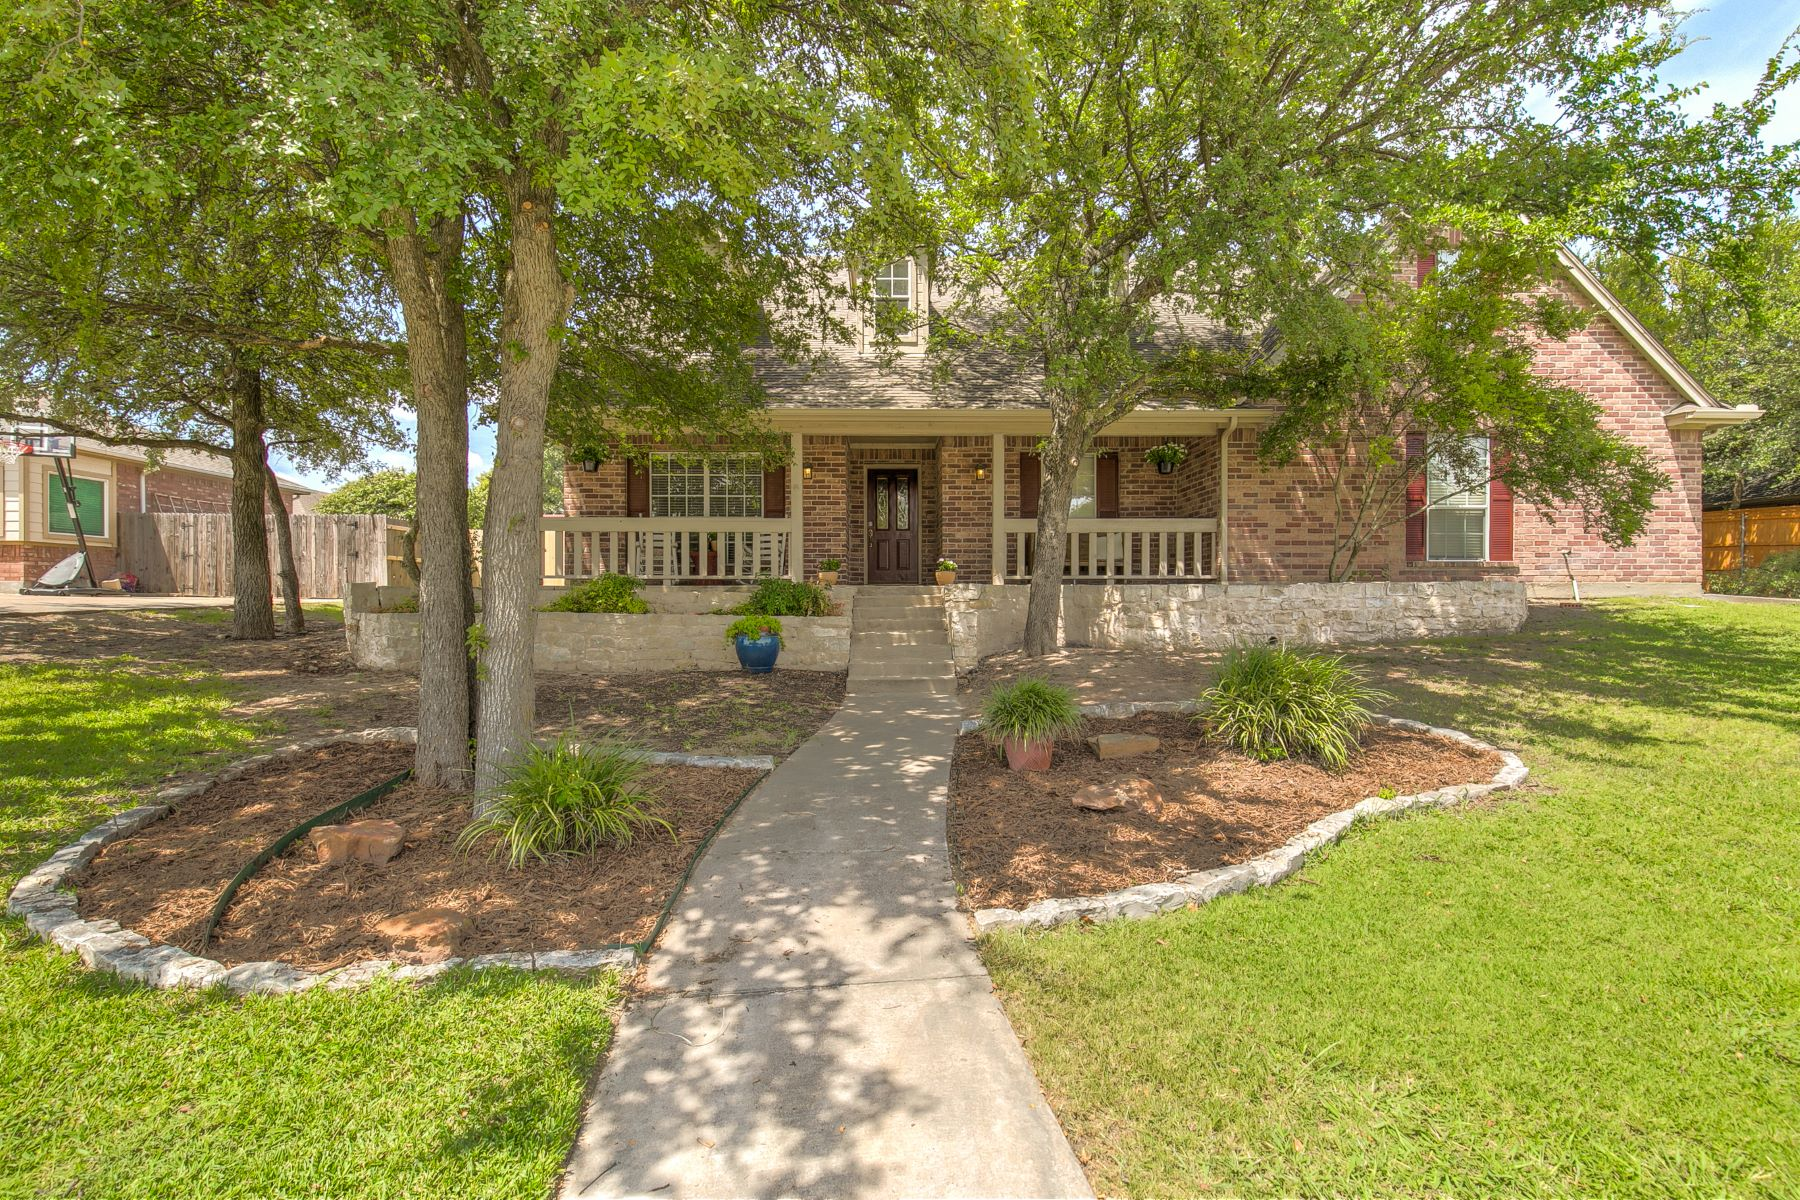 Single Family Homes for Sale at Beautiful, scenic home is located in the heart of Aledo proper 211 Autumnwood Drive Aledo, Texas 76008 United States